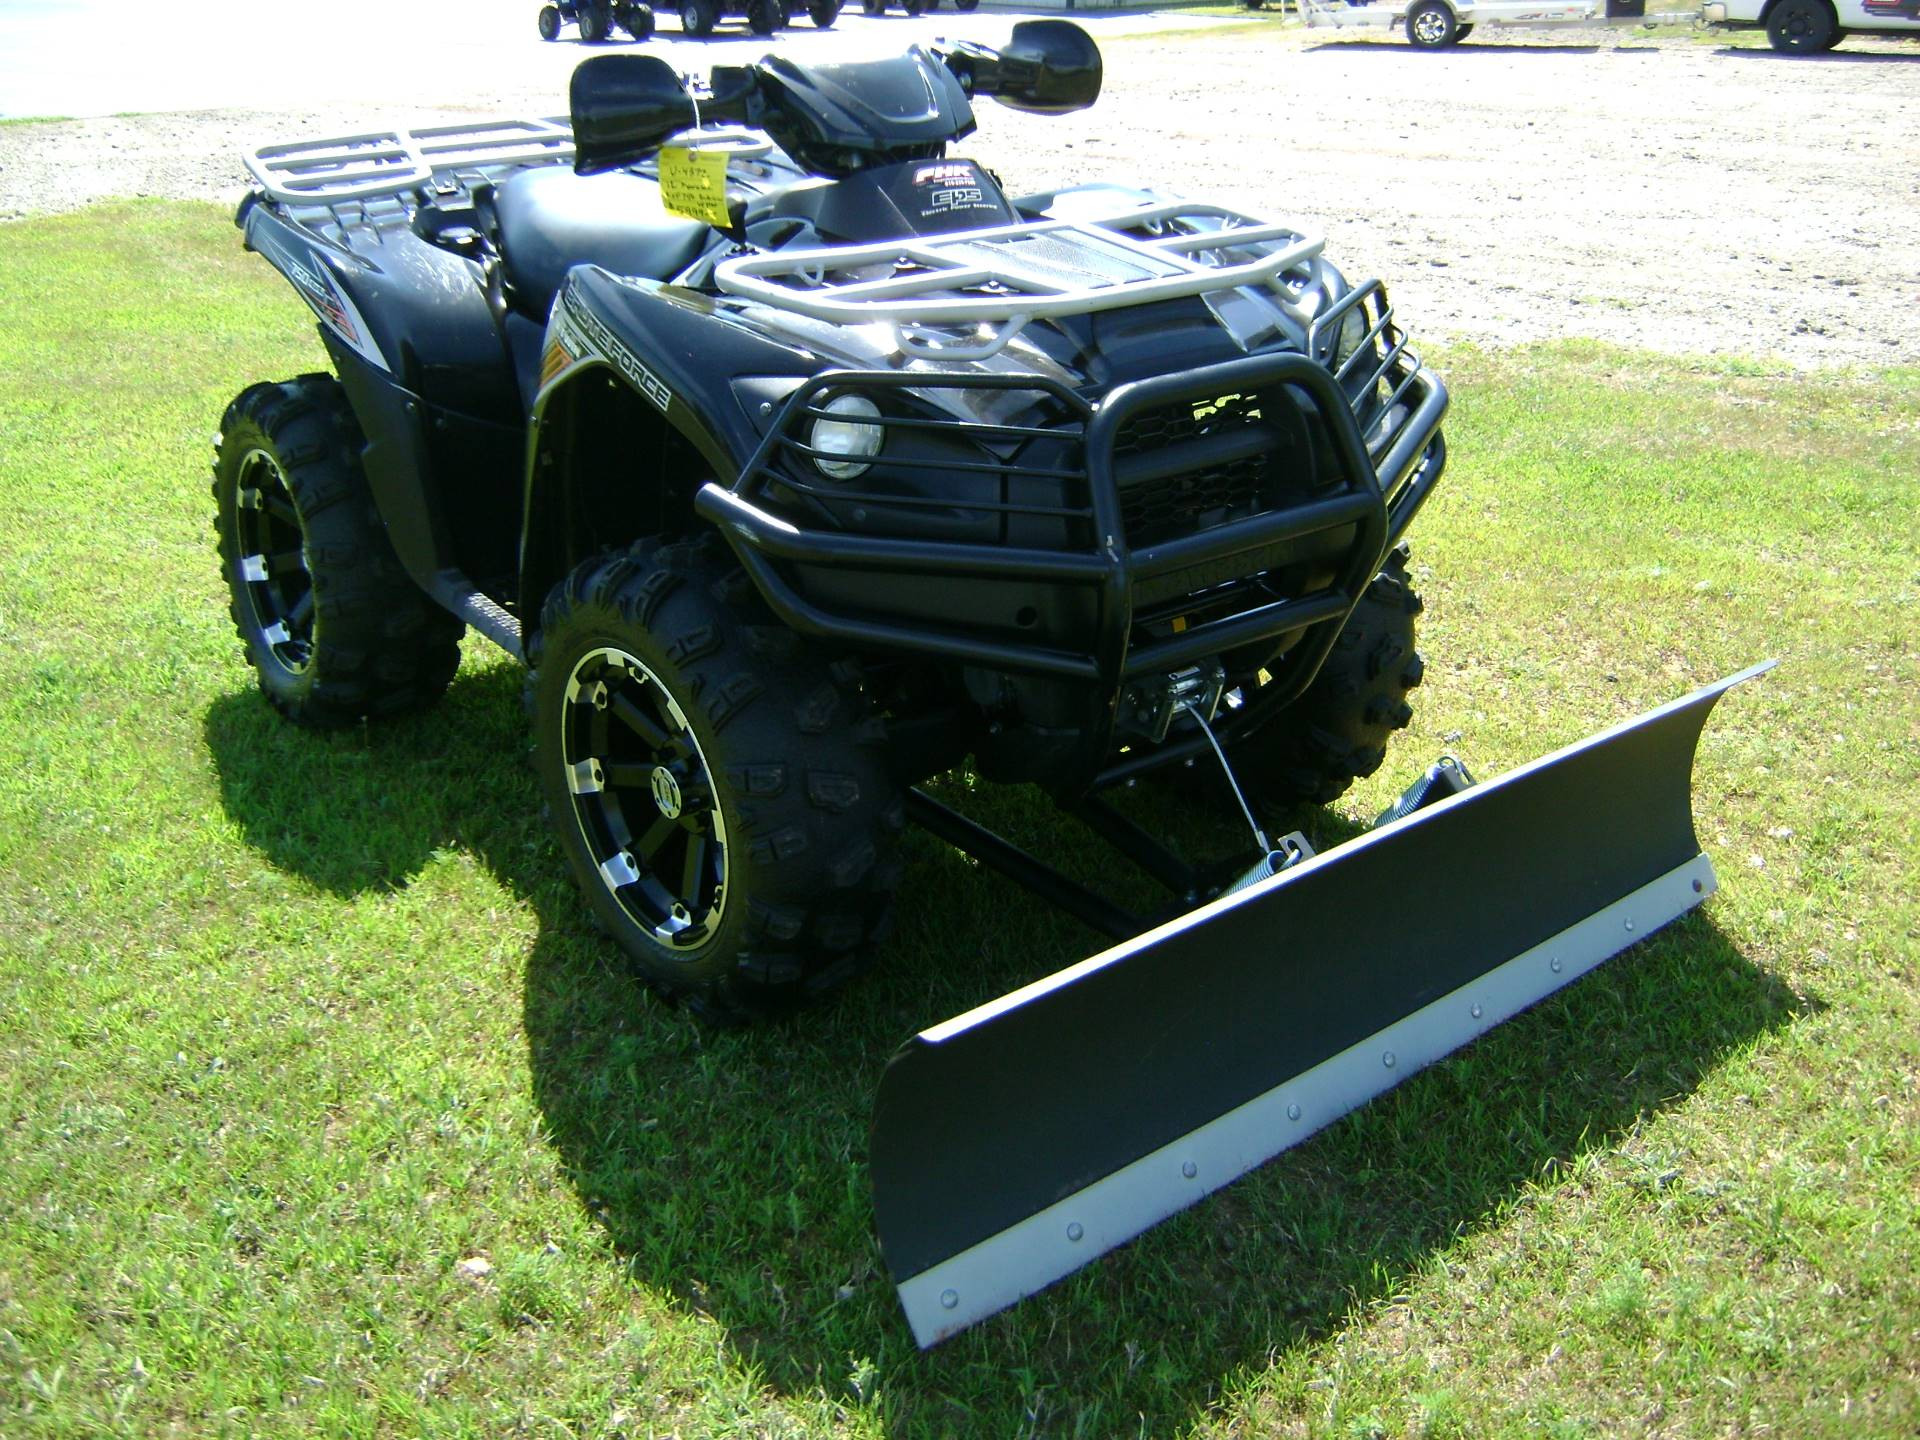 2012 Kawasaki BRUTE FORCE 750 in Freeport, Illinois - Photo 2